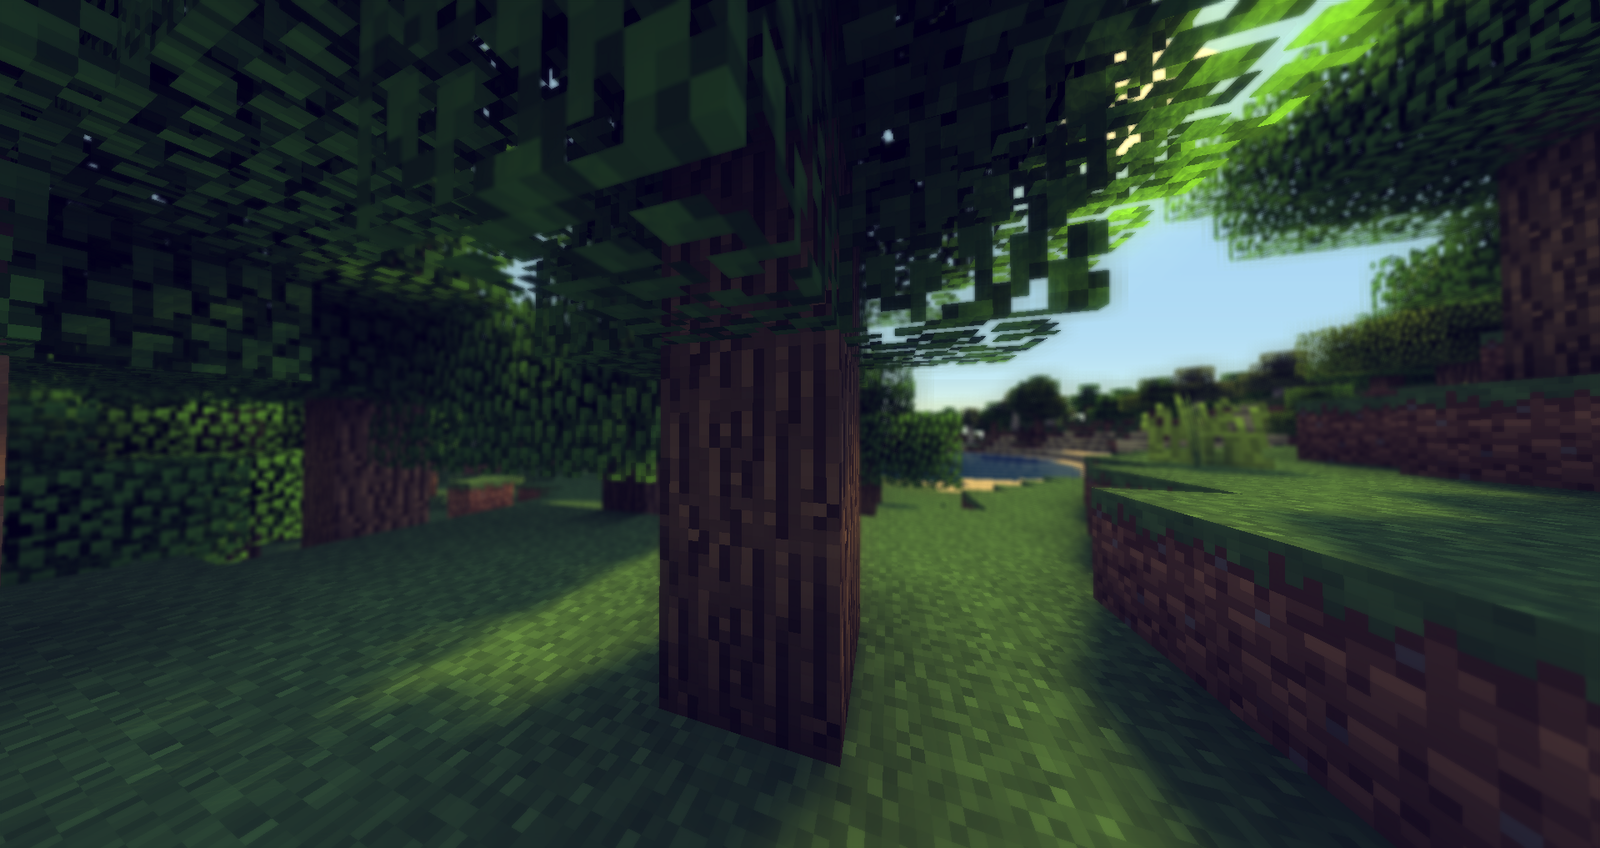 35476  sj8m [1.8.9] MrMeep x3's Shaders Mod Download